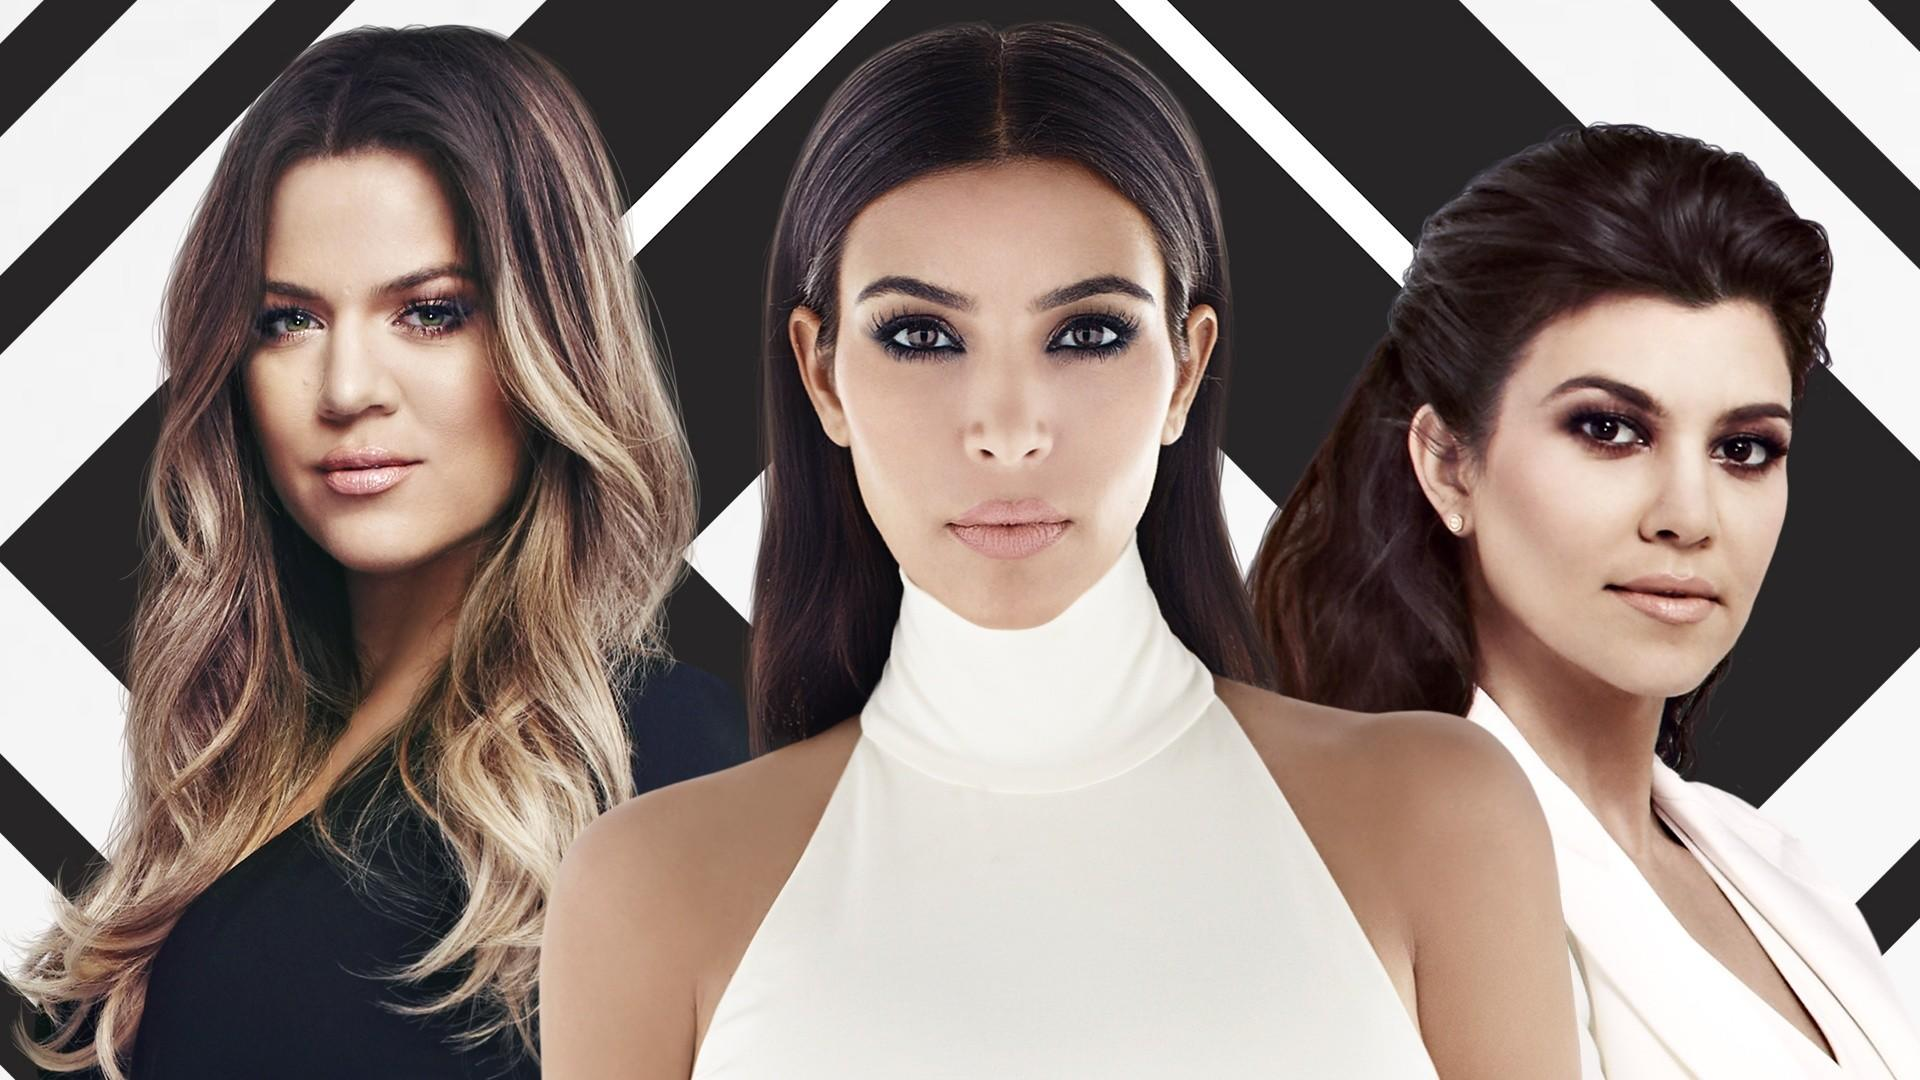 The Kardashian family announced Tuesday that they would be donating $500,000 to Hurricane Harvey relief efforts. (NBCUniversal)